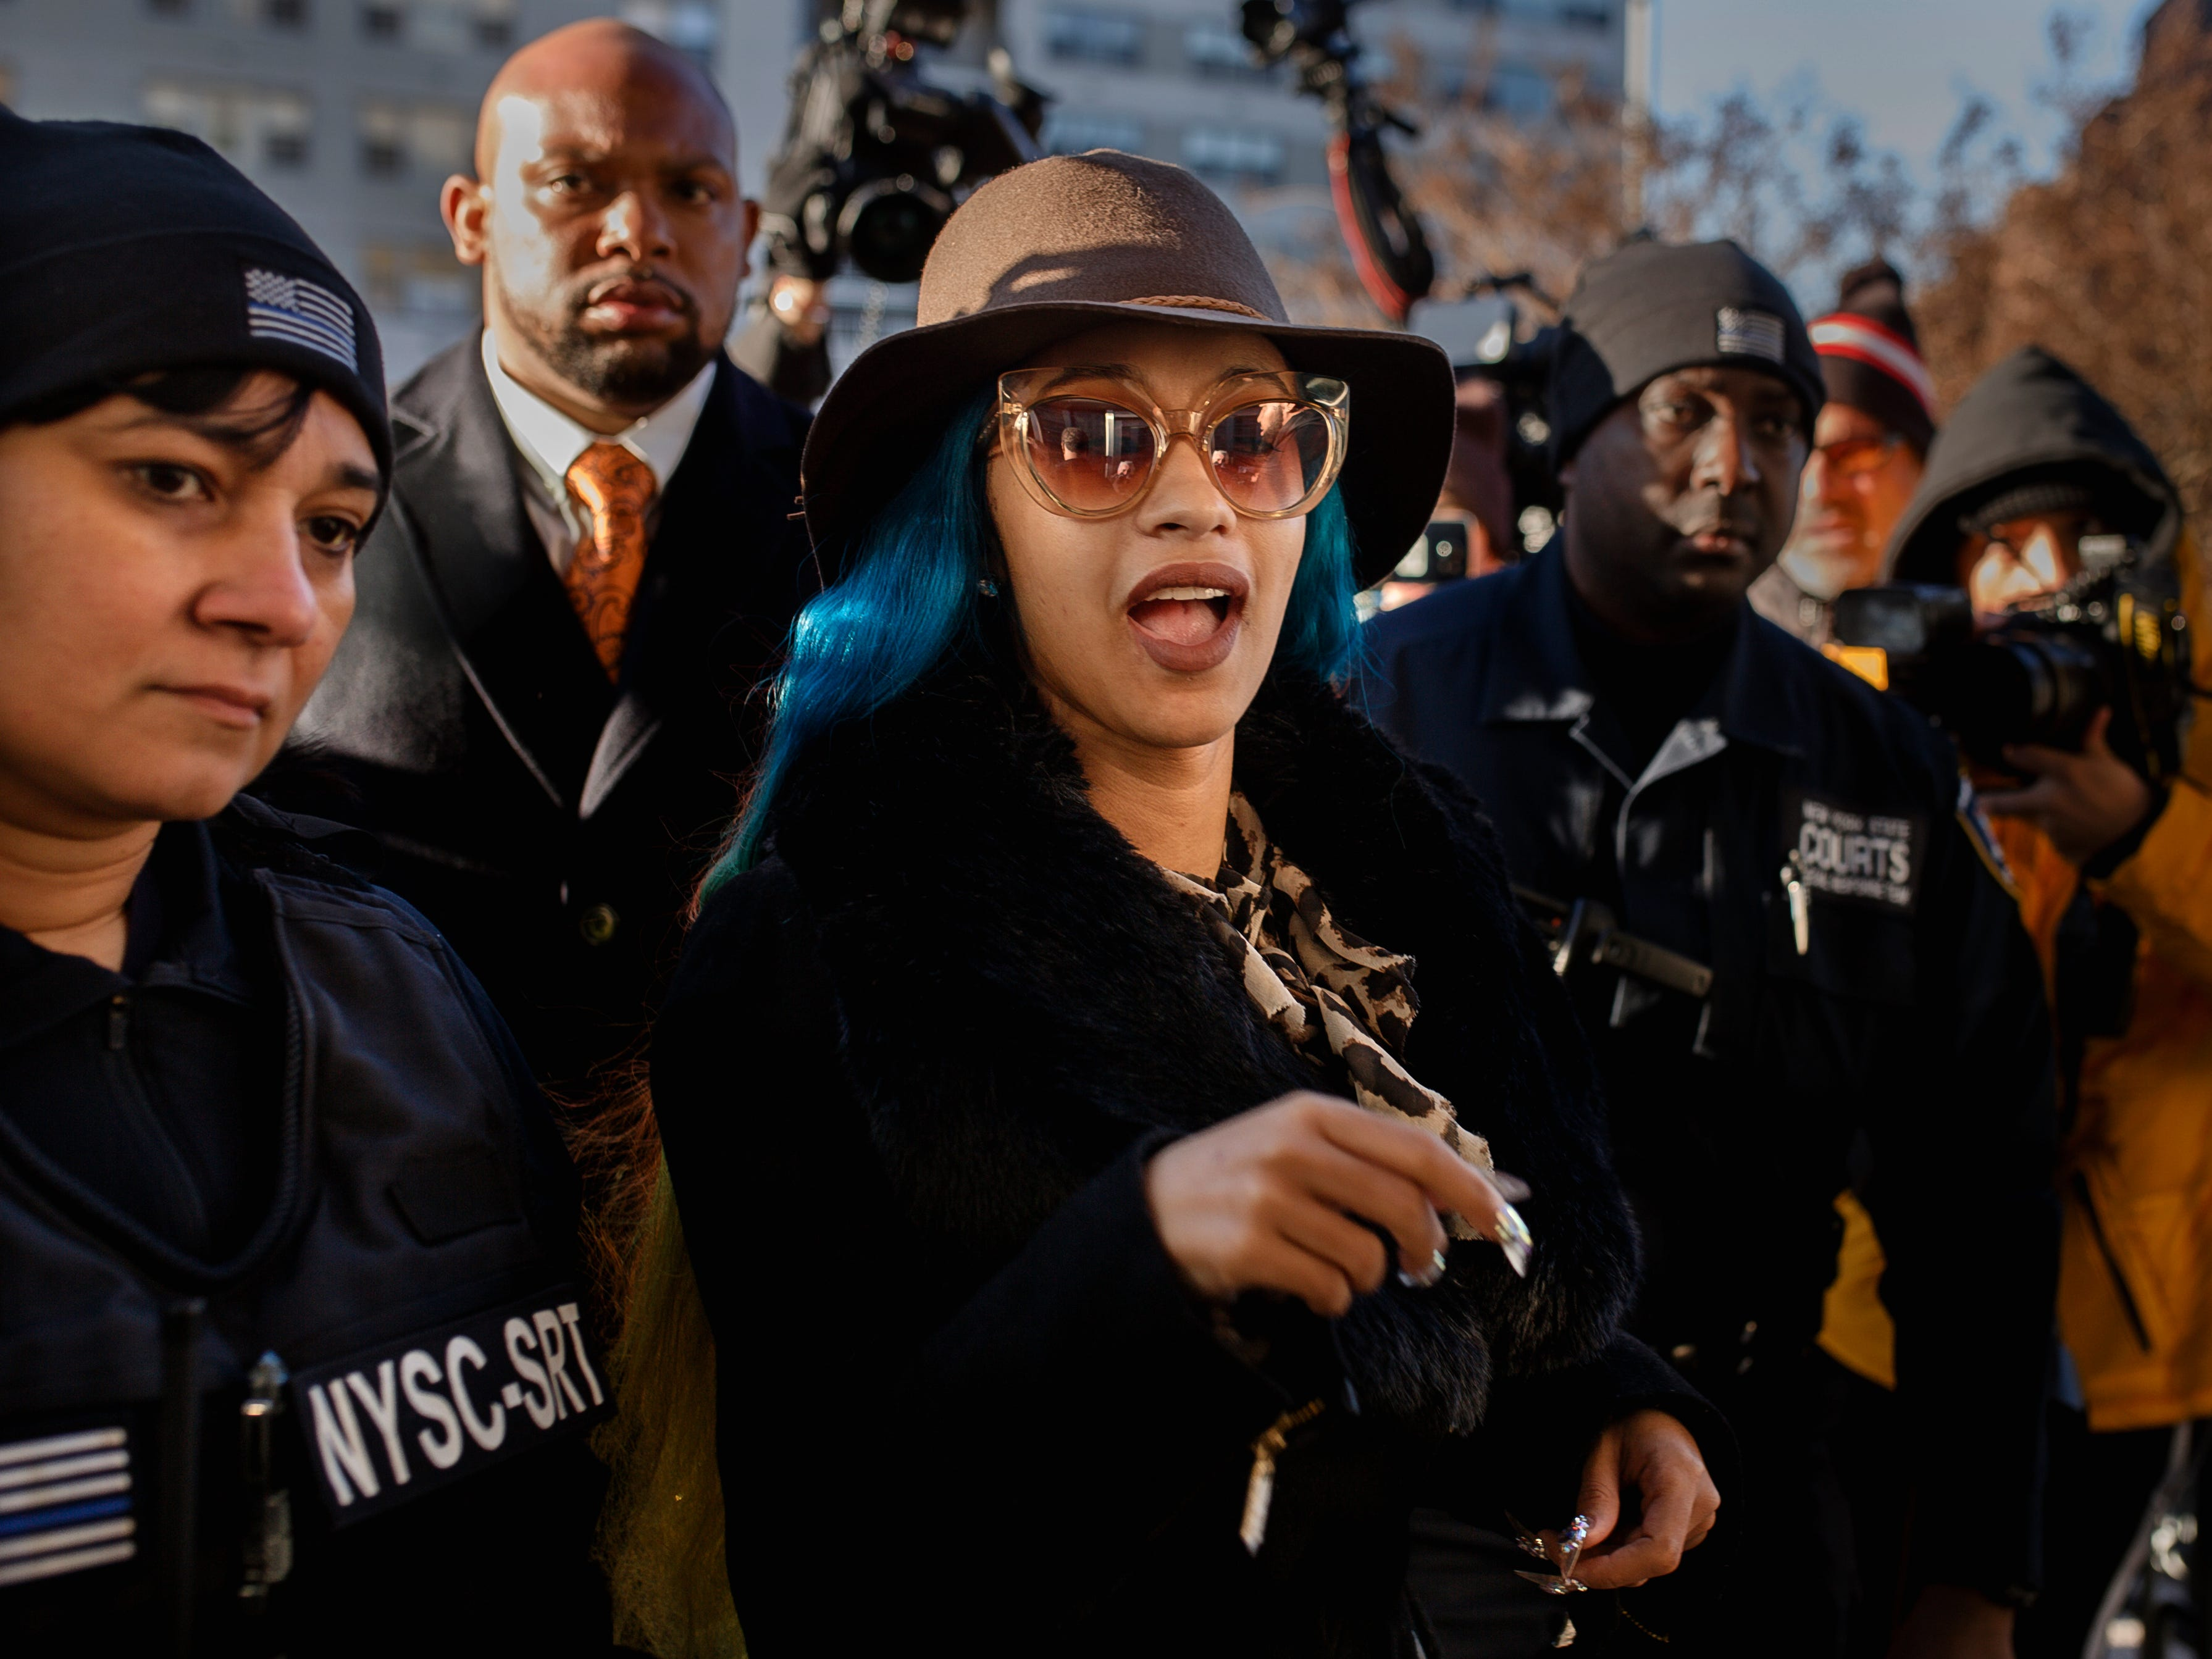 Rapper Cardi B, center, arrives at Queens County Criminal Court, Friday, Dec. 7, 2018, in New York. The platinum-selling hip hop star appeared in court on charges related to a brawl at a New York strip club.